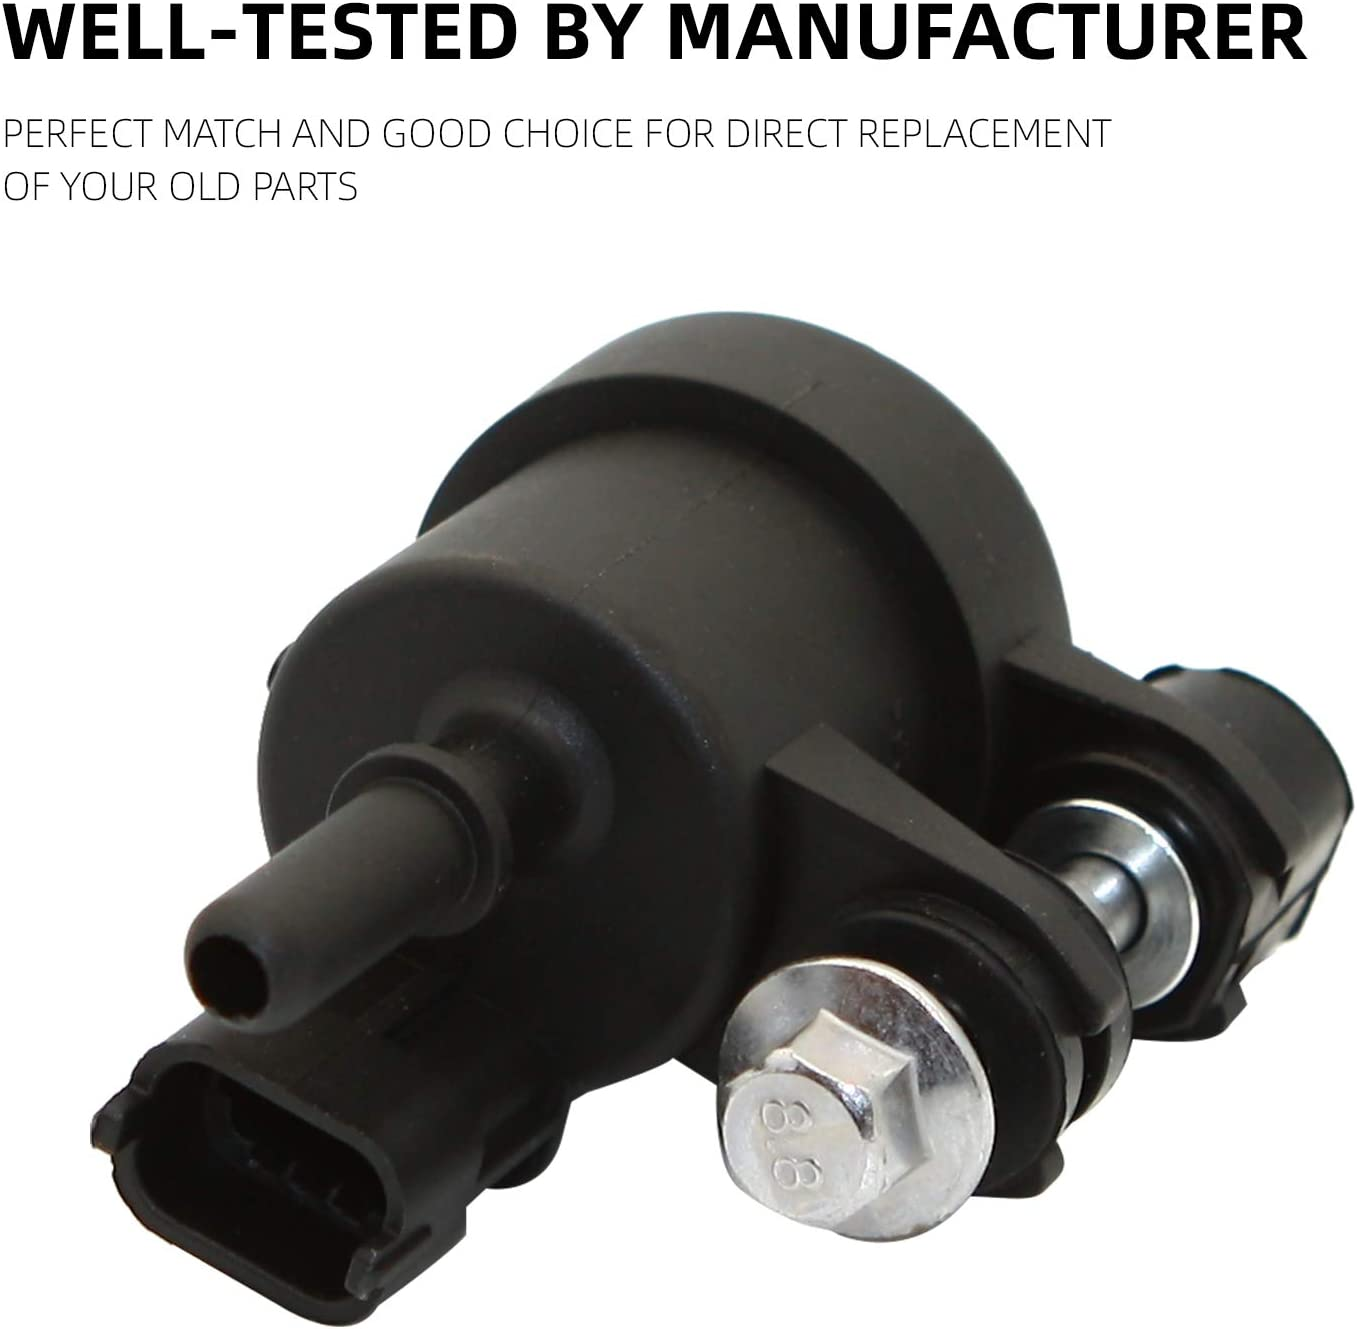 12610560 Vapor Canister Purge Valve Solenoid Fits For GMC Acadia Terrain Chevy Impala Traverse Cadillac SRX Buick Enclave Replaces 911-082 214-2137 by Sikawai